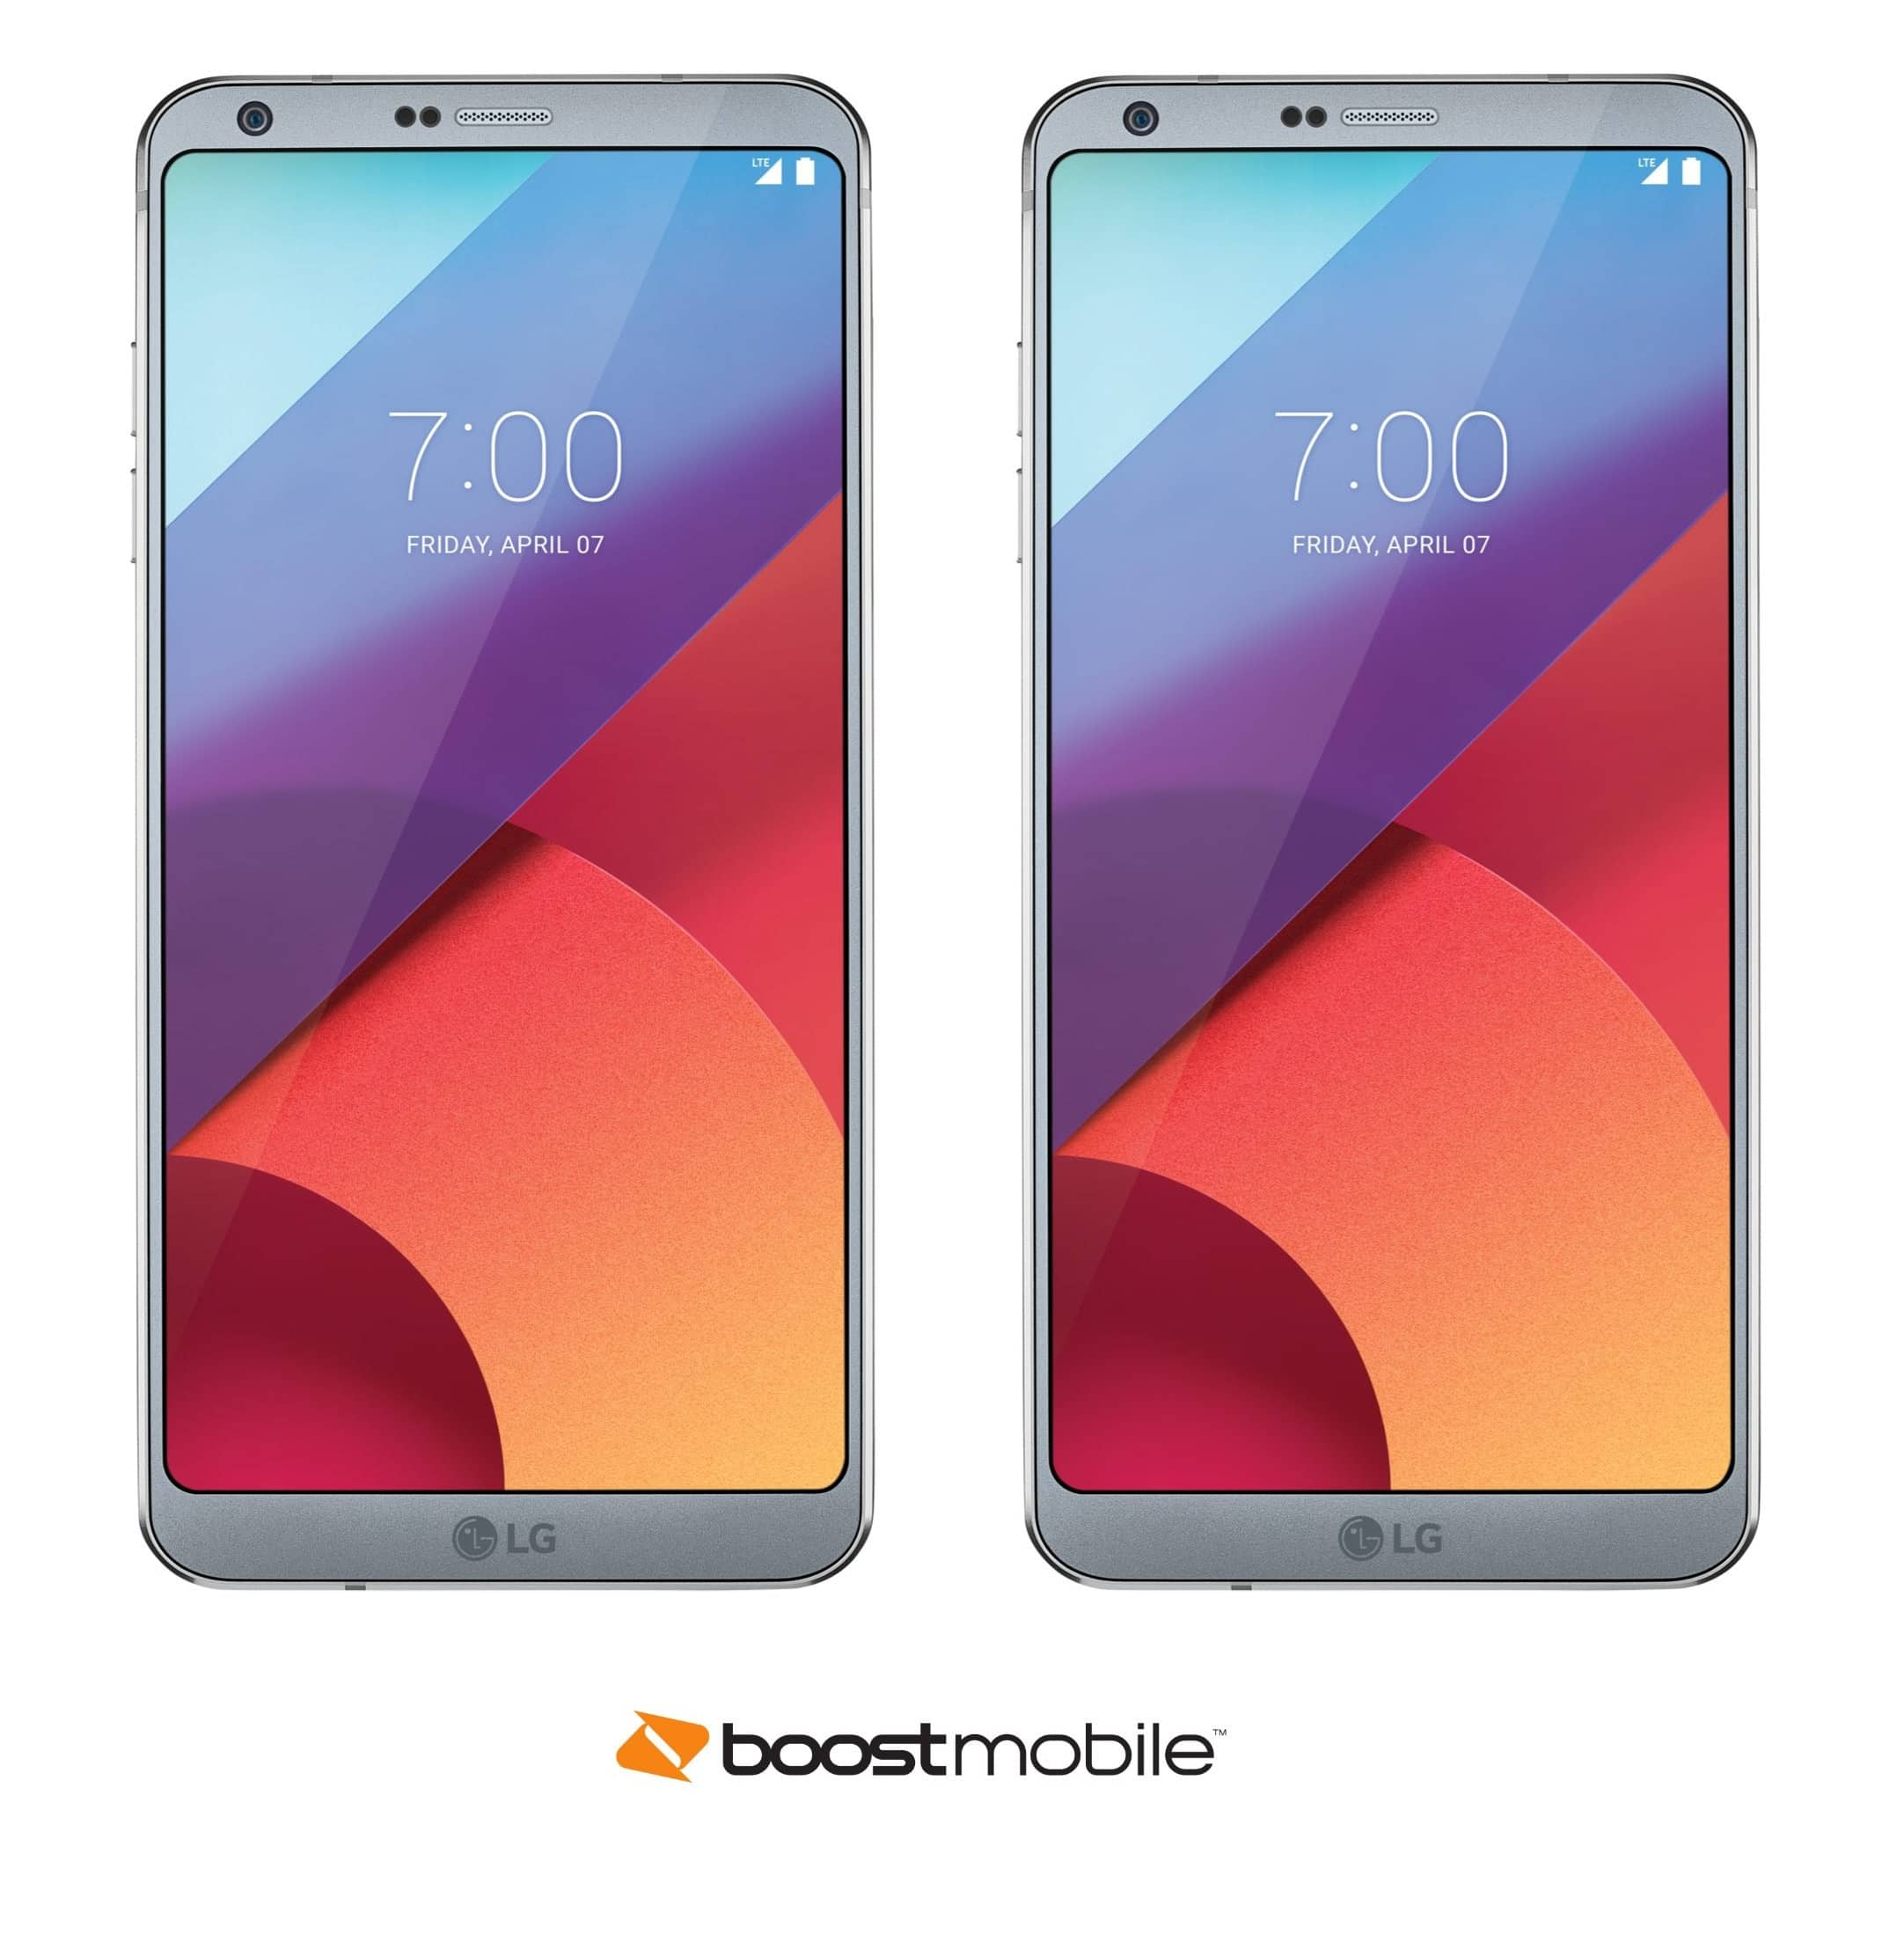 Boost Mobile In-Store Offer: Two Boost Mobile LG G6 Smartphones for $29.99 each w/ Port-In + Activation of Two Lines (starting at $50/line)